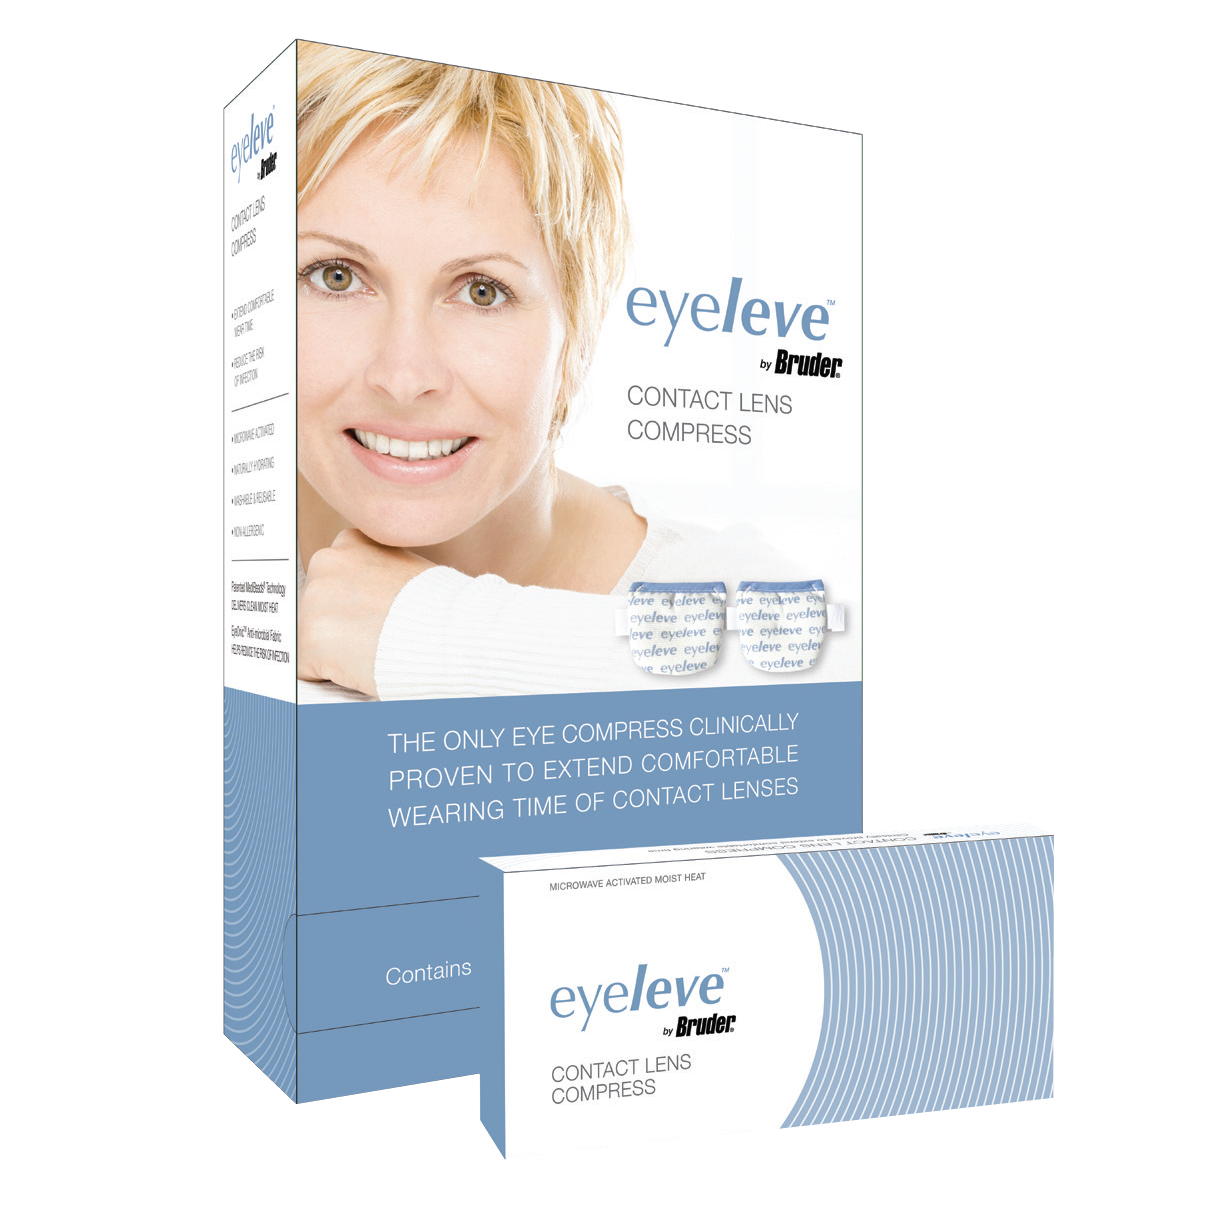 Bruder Announces Eyeleve™ Contact Lens Compress